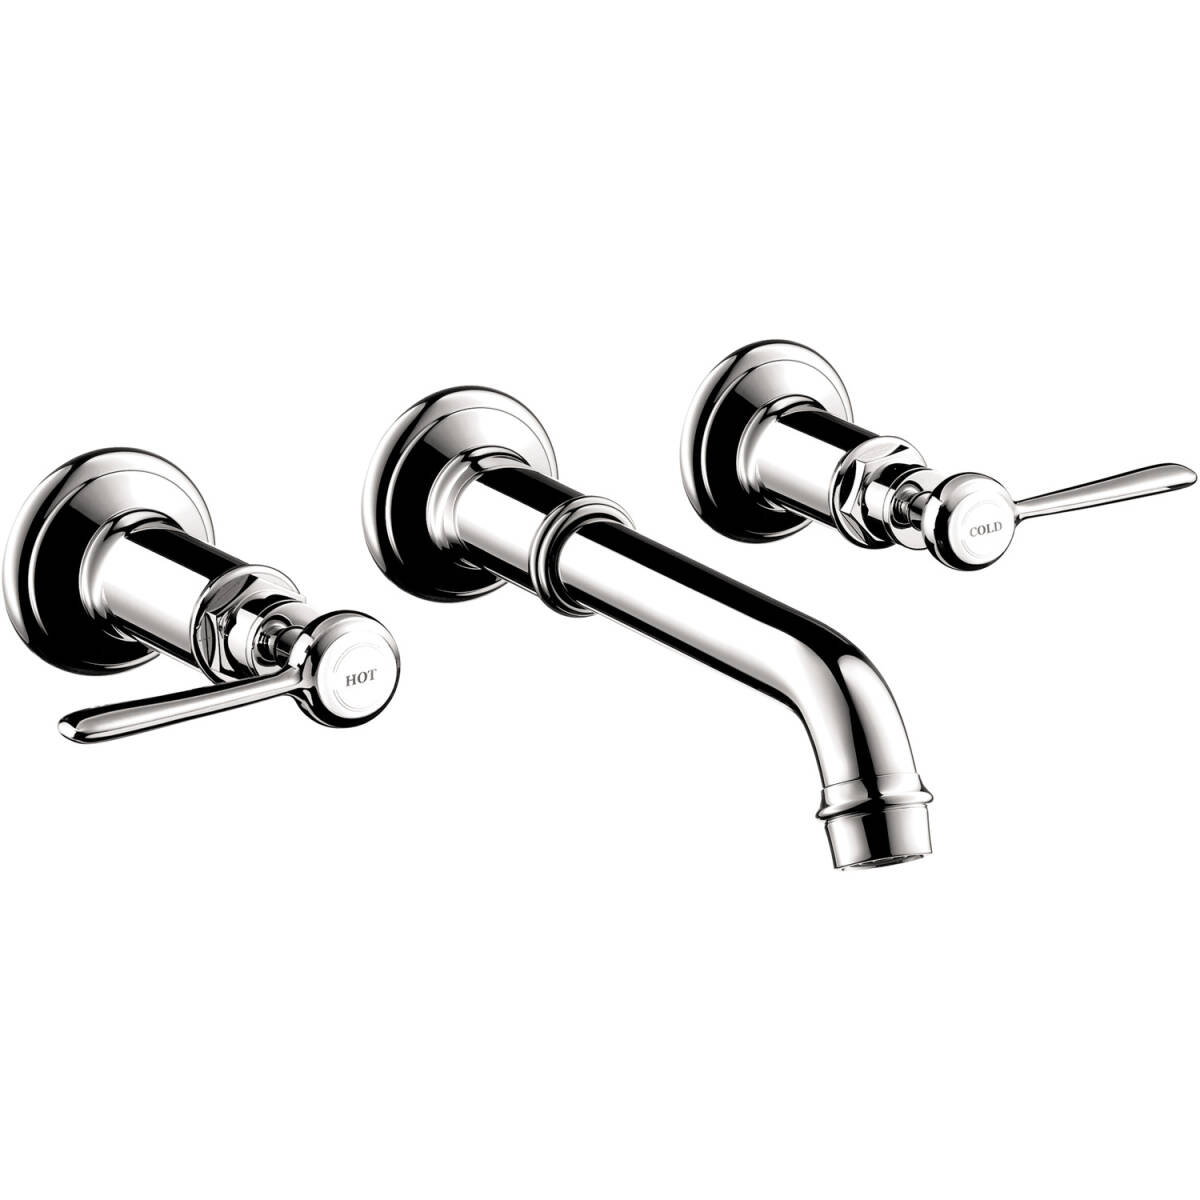 3-hole basin mixer for concealed installation wall-mounted with spout 165 - 225 mm and lever handles, Chrome, 16534001